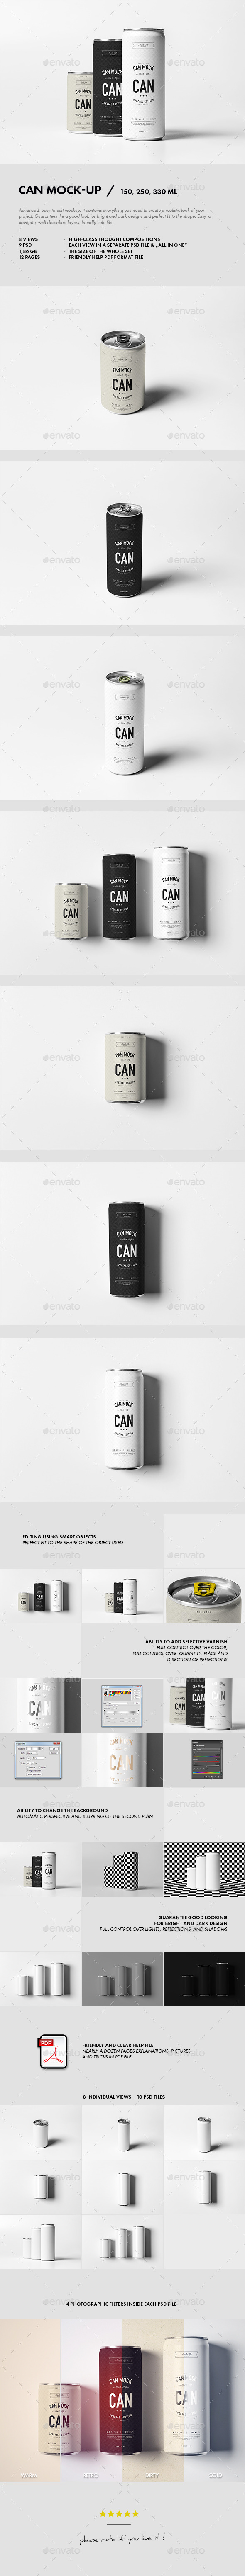 Can Mock-up - Food and Drink Packaging